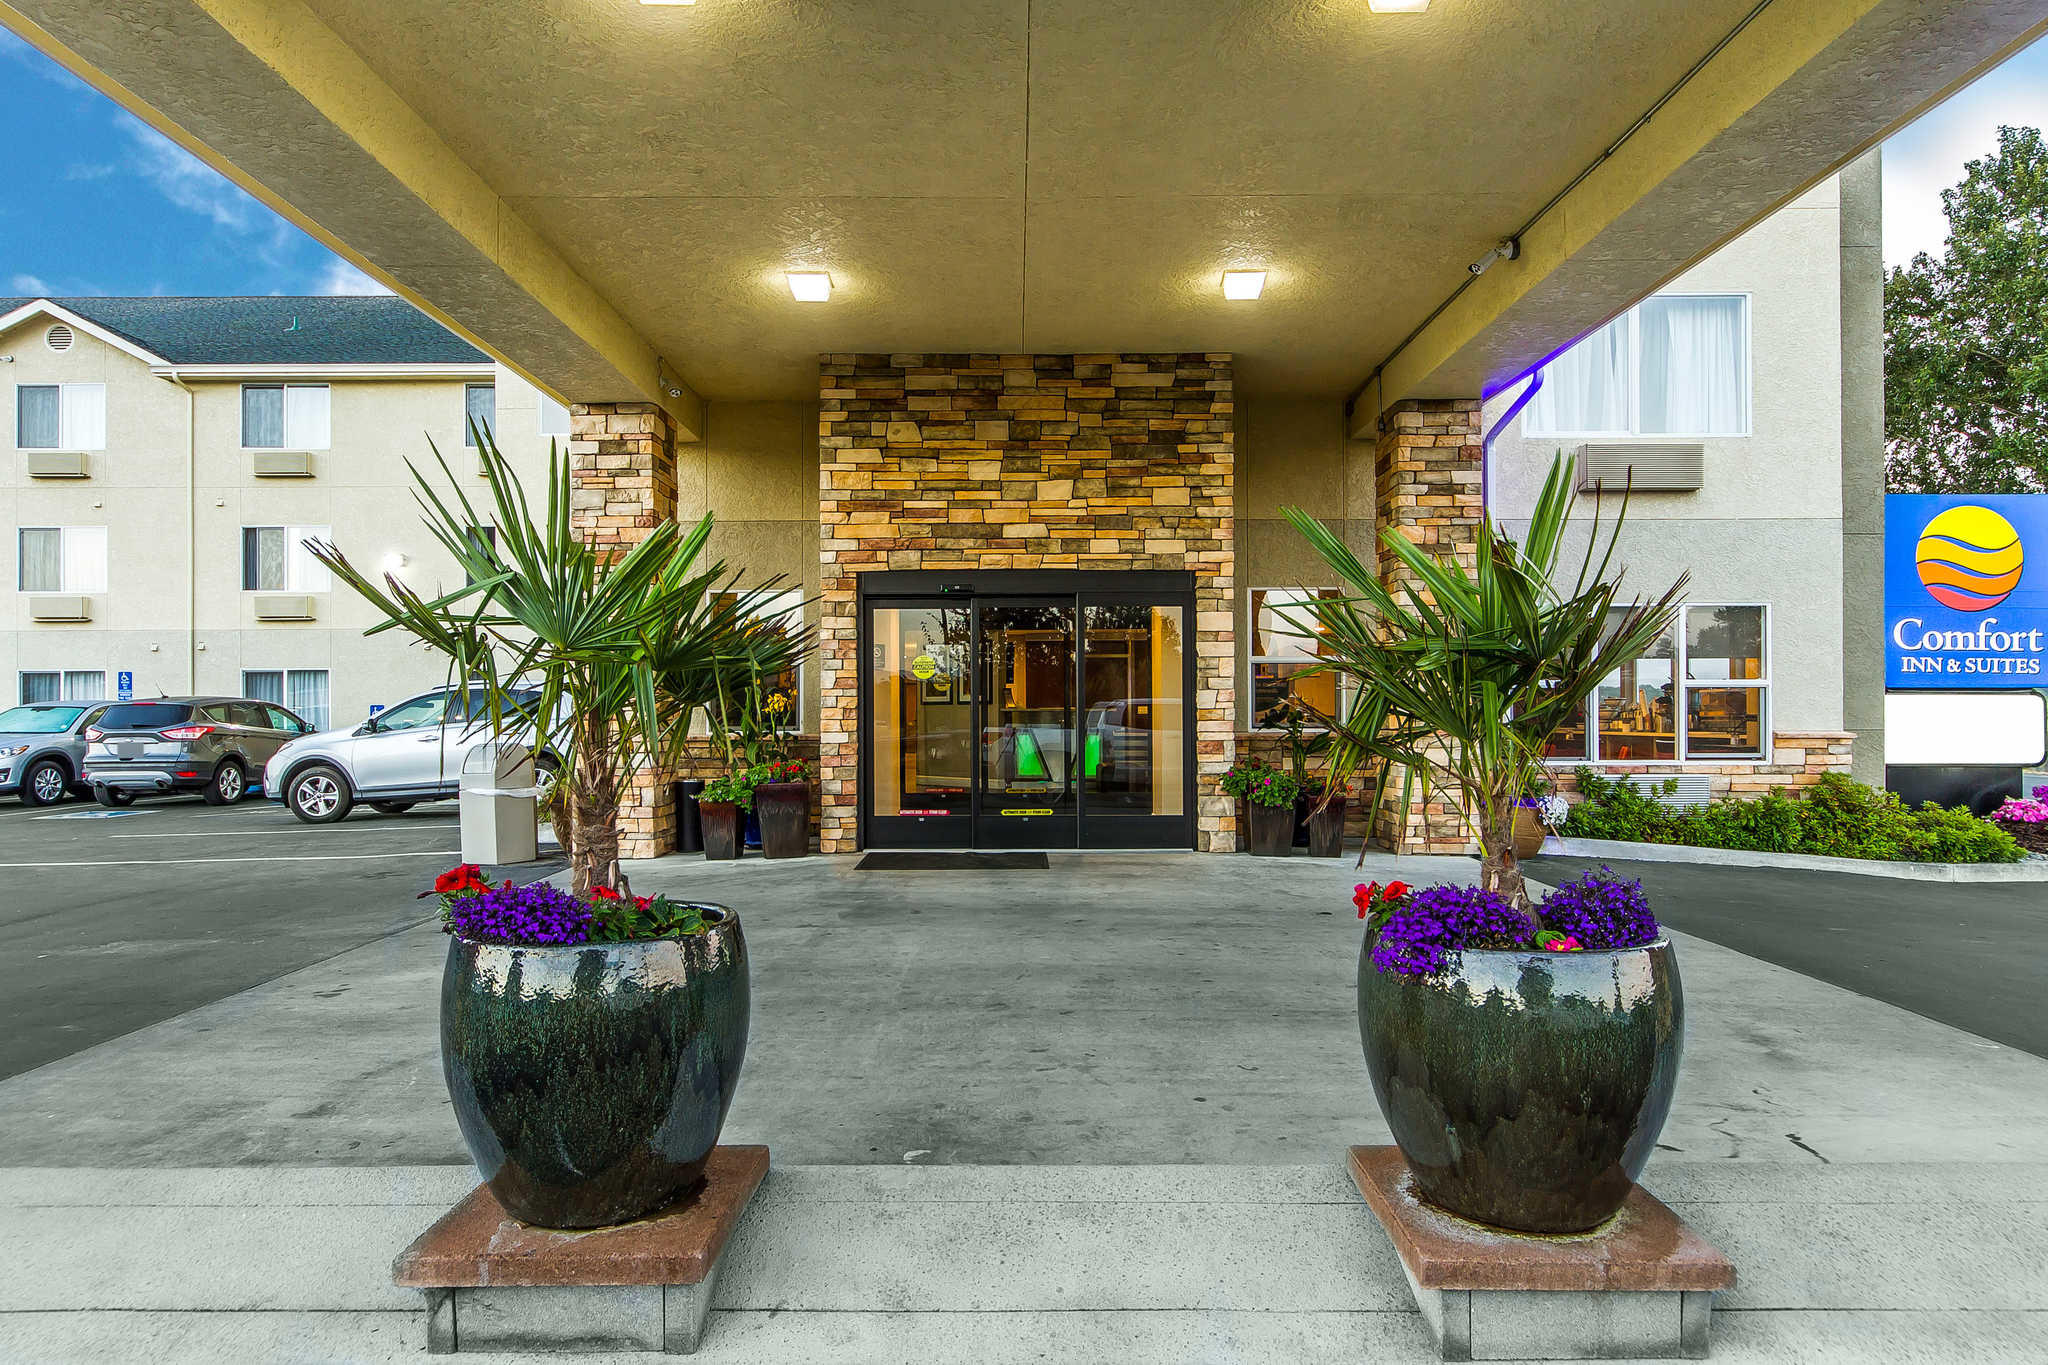 Comfort Inn & Suites Redwood Country image 1